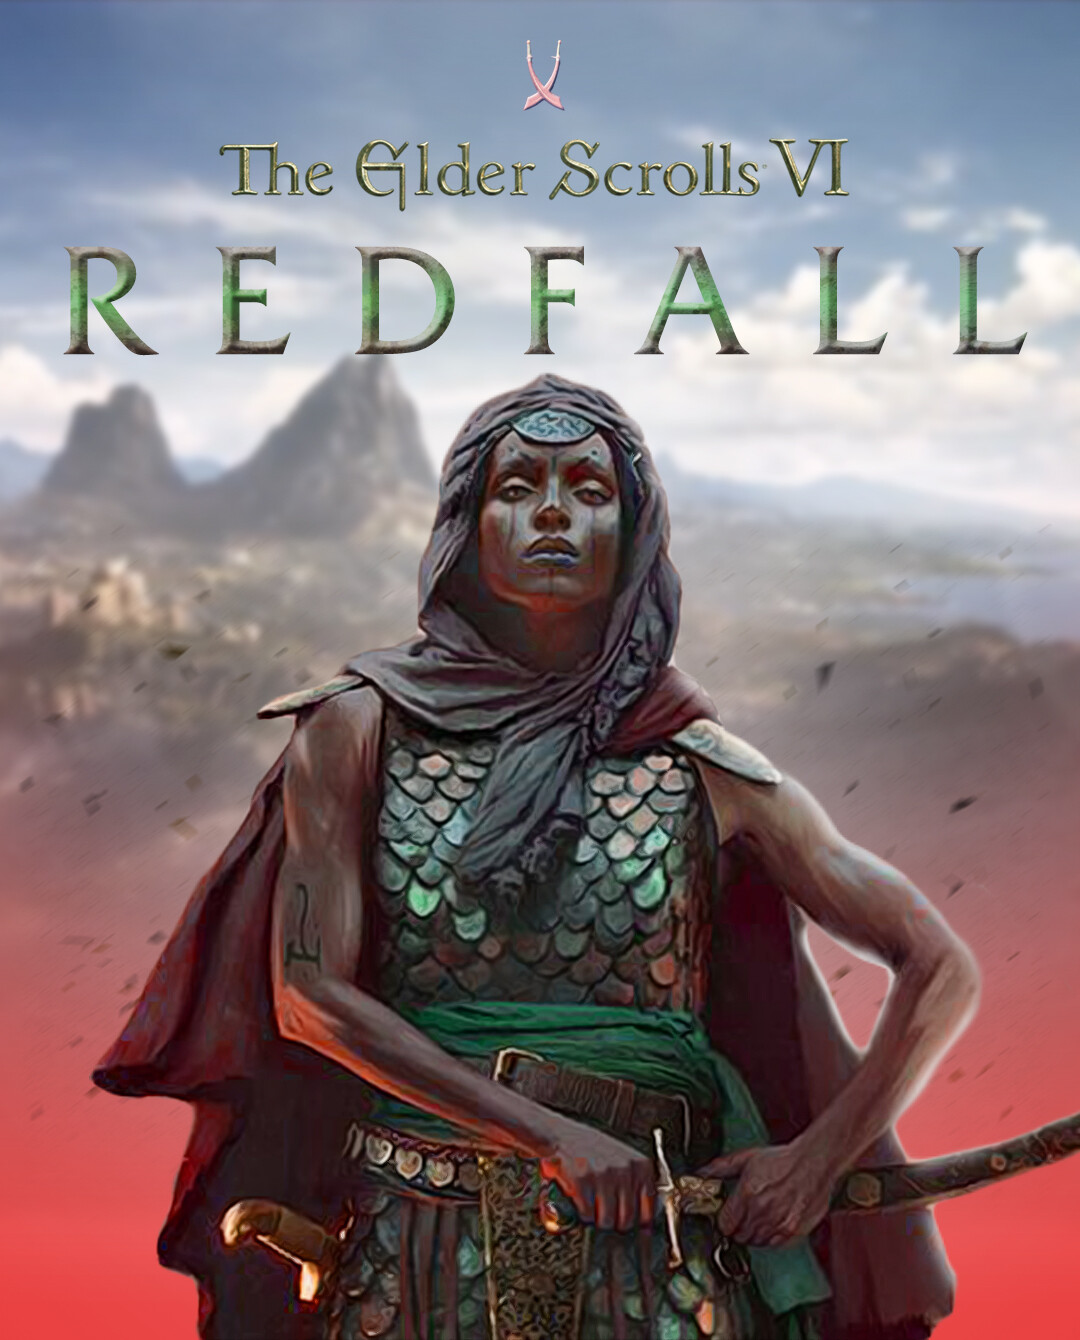 Redfall: Release date, gameplay and everything you need to know is here